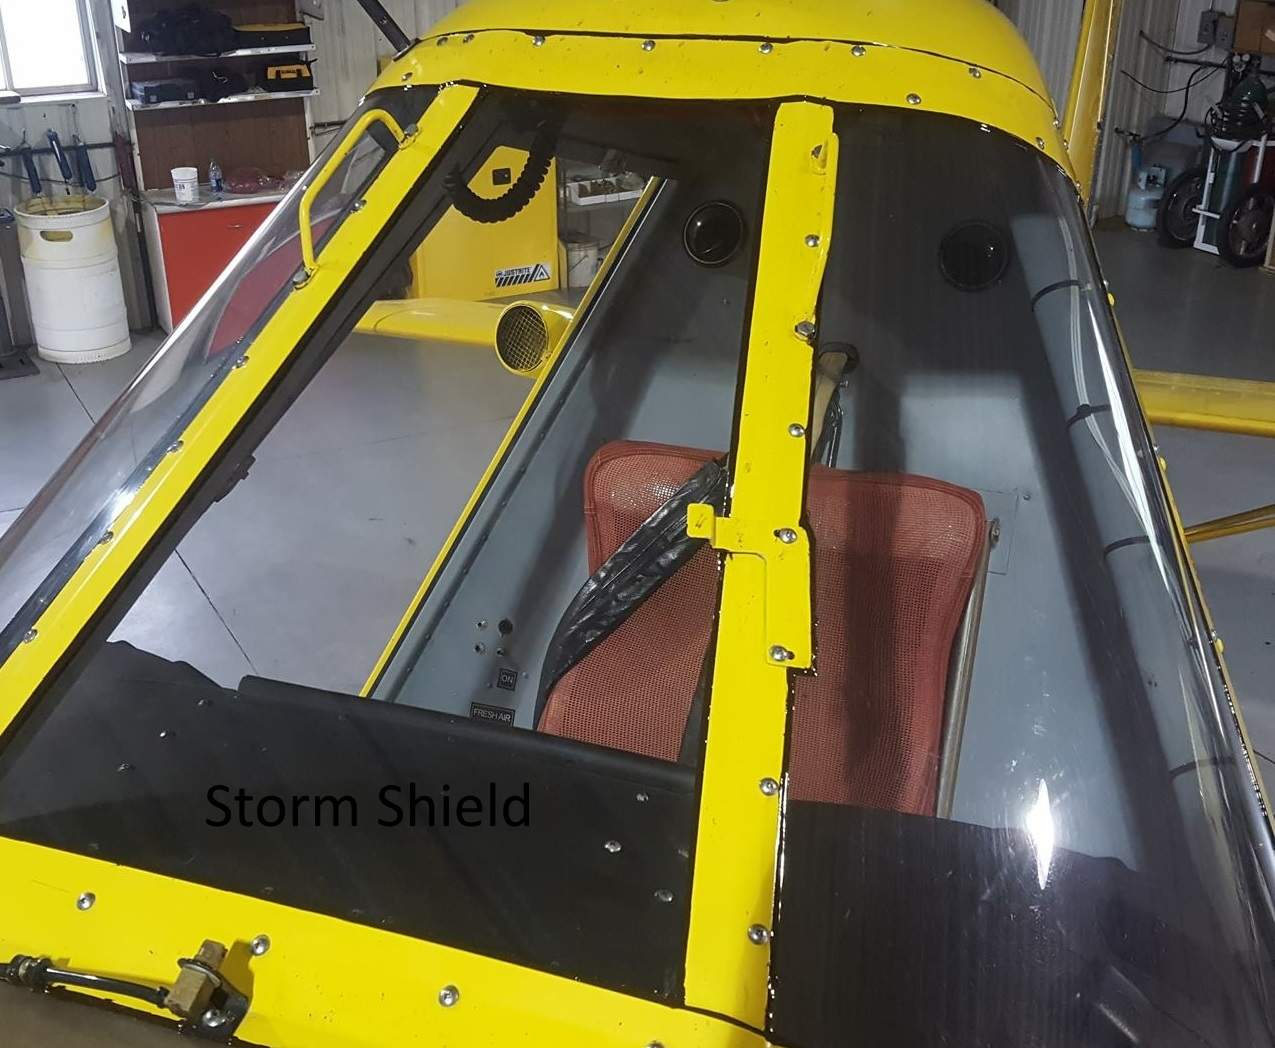 Other Important Parts Yorkton Aircraft Service Wiring Harness Clamps August 2017 Hershey Flying Storm Aeronautics Has Received Faa Approval On Their New Shield